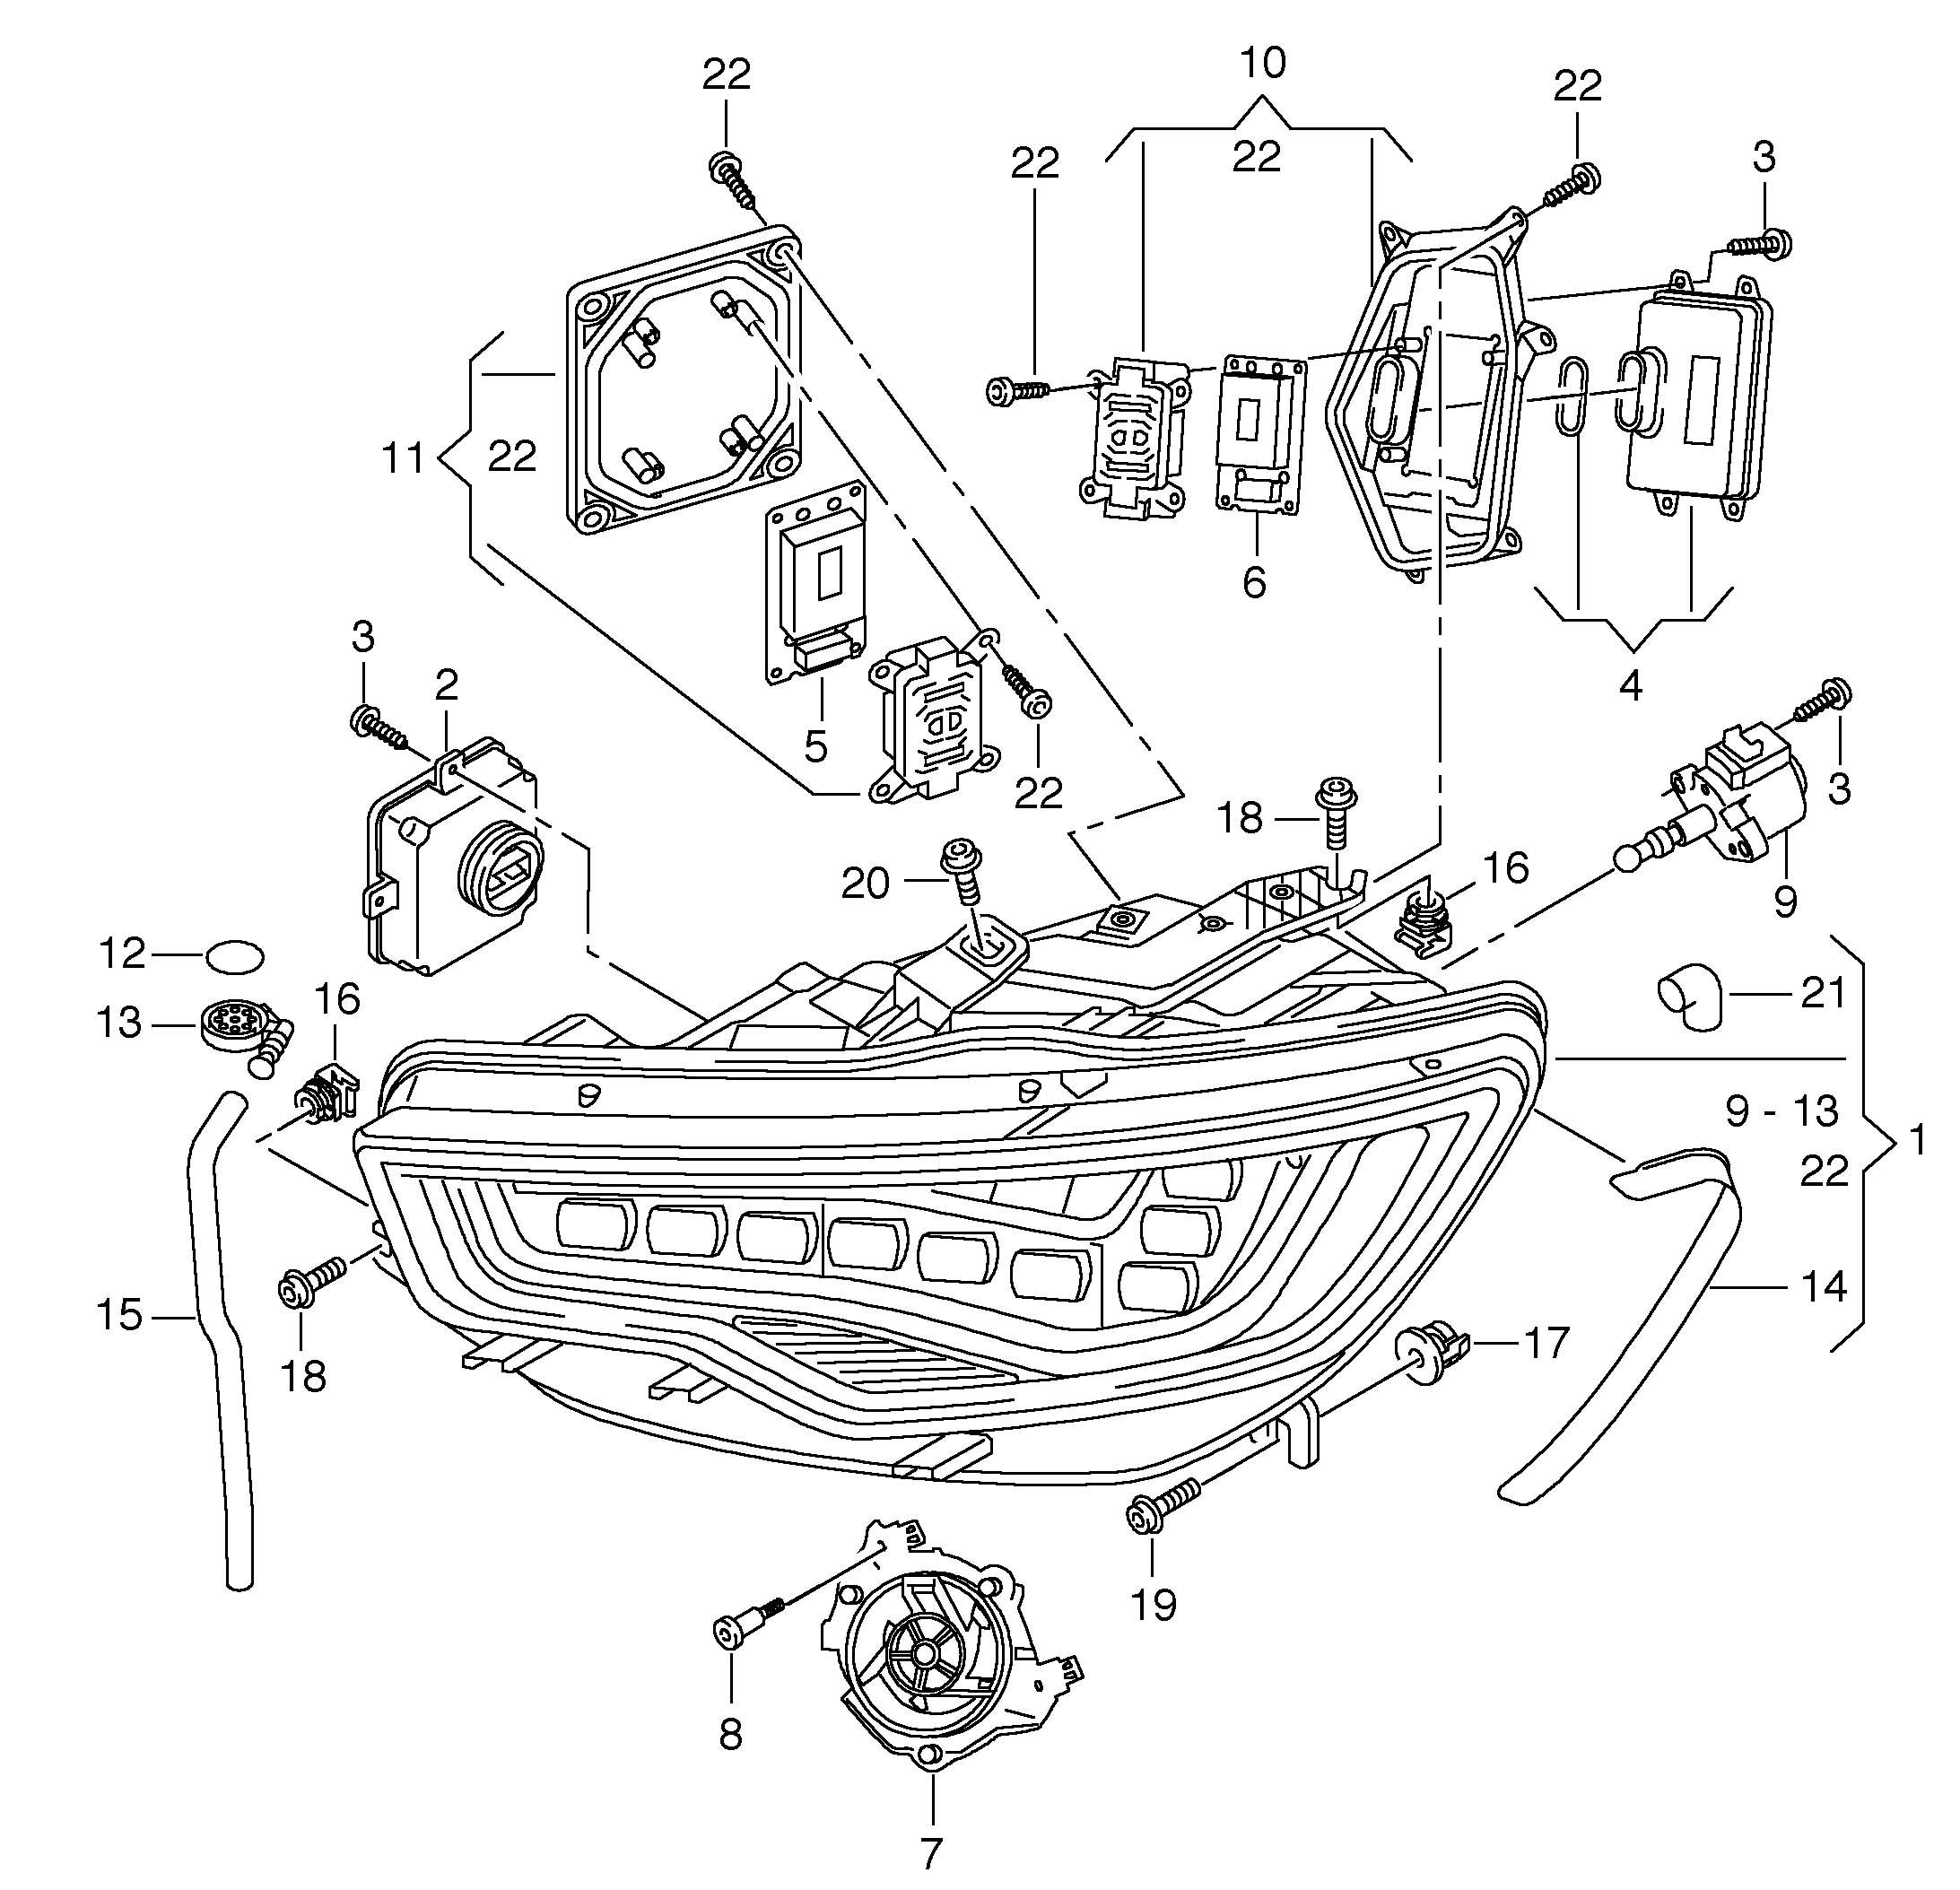 small resolution of image result for audi a7 2012 led headlight wiring diagram